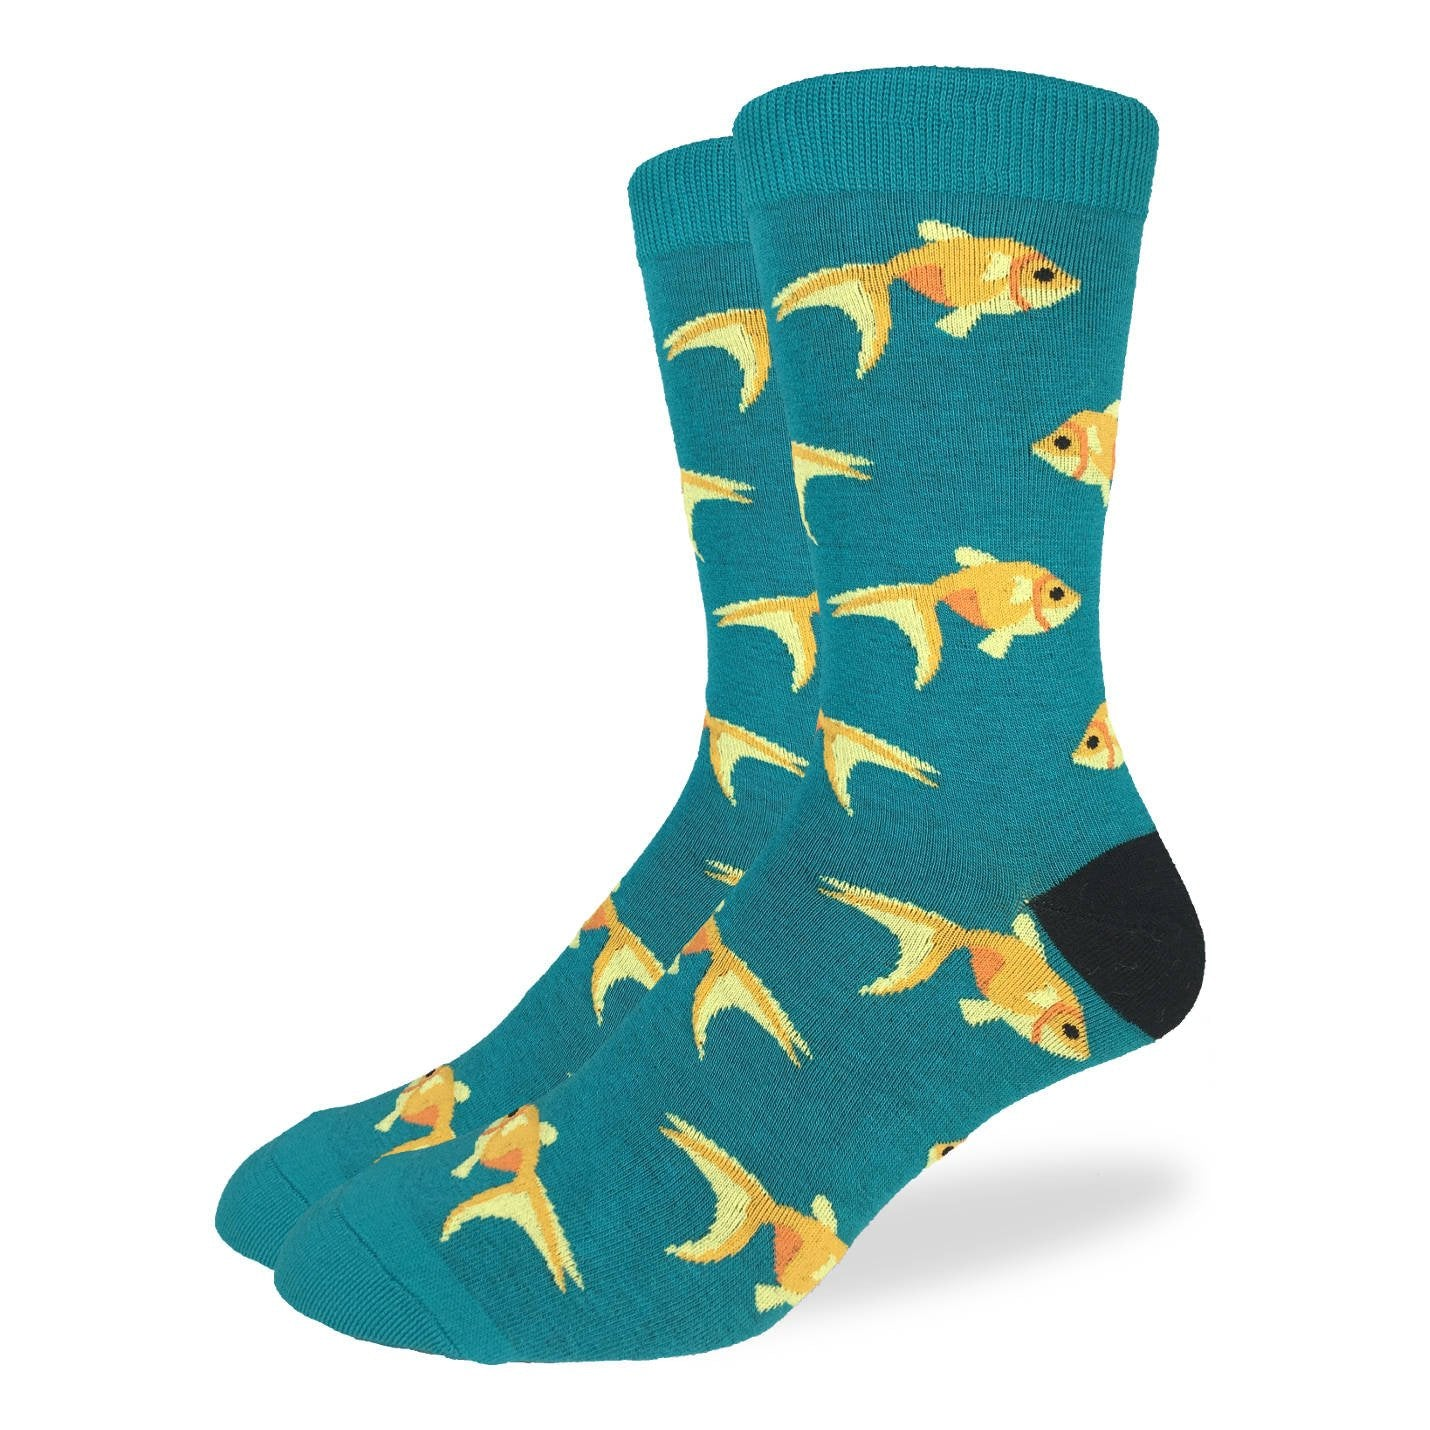 Men's Goldfish Socks - Good Luck Sock